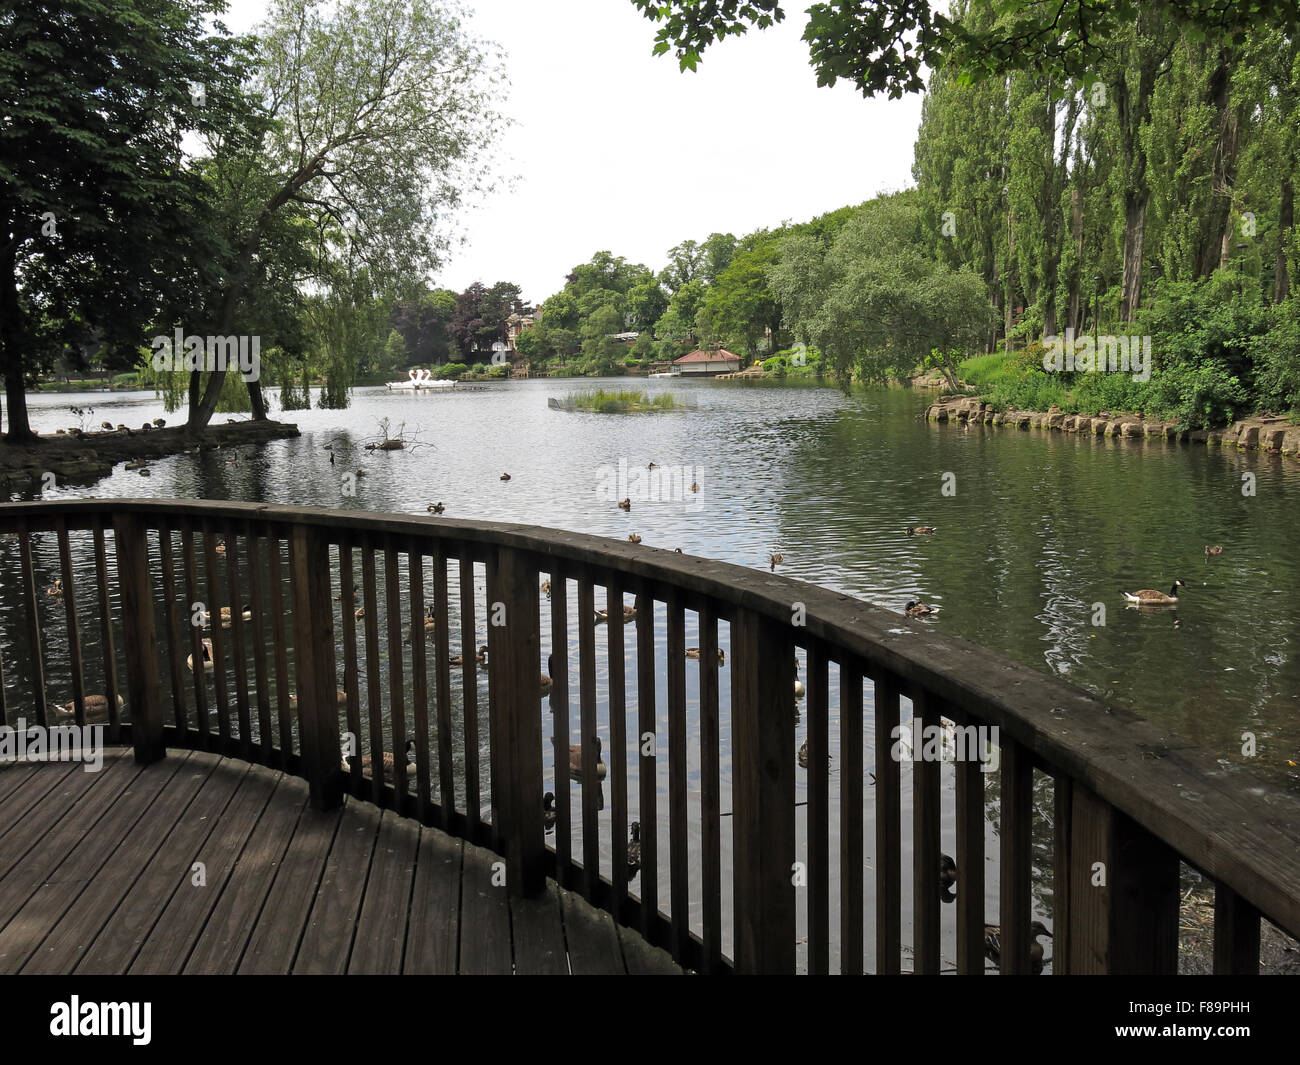 Walsall Arboretum lake in summer, West Midlands, England,UK - Stock Image